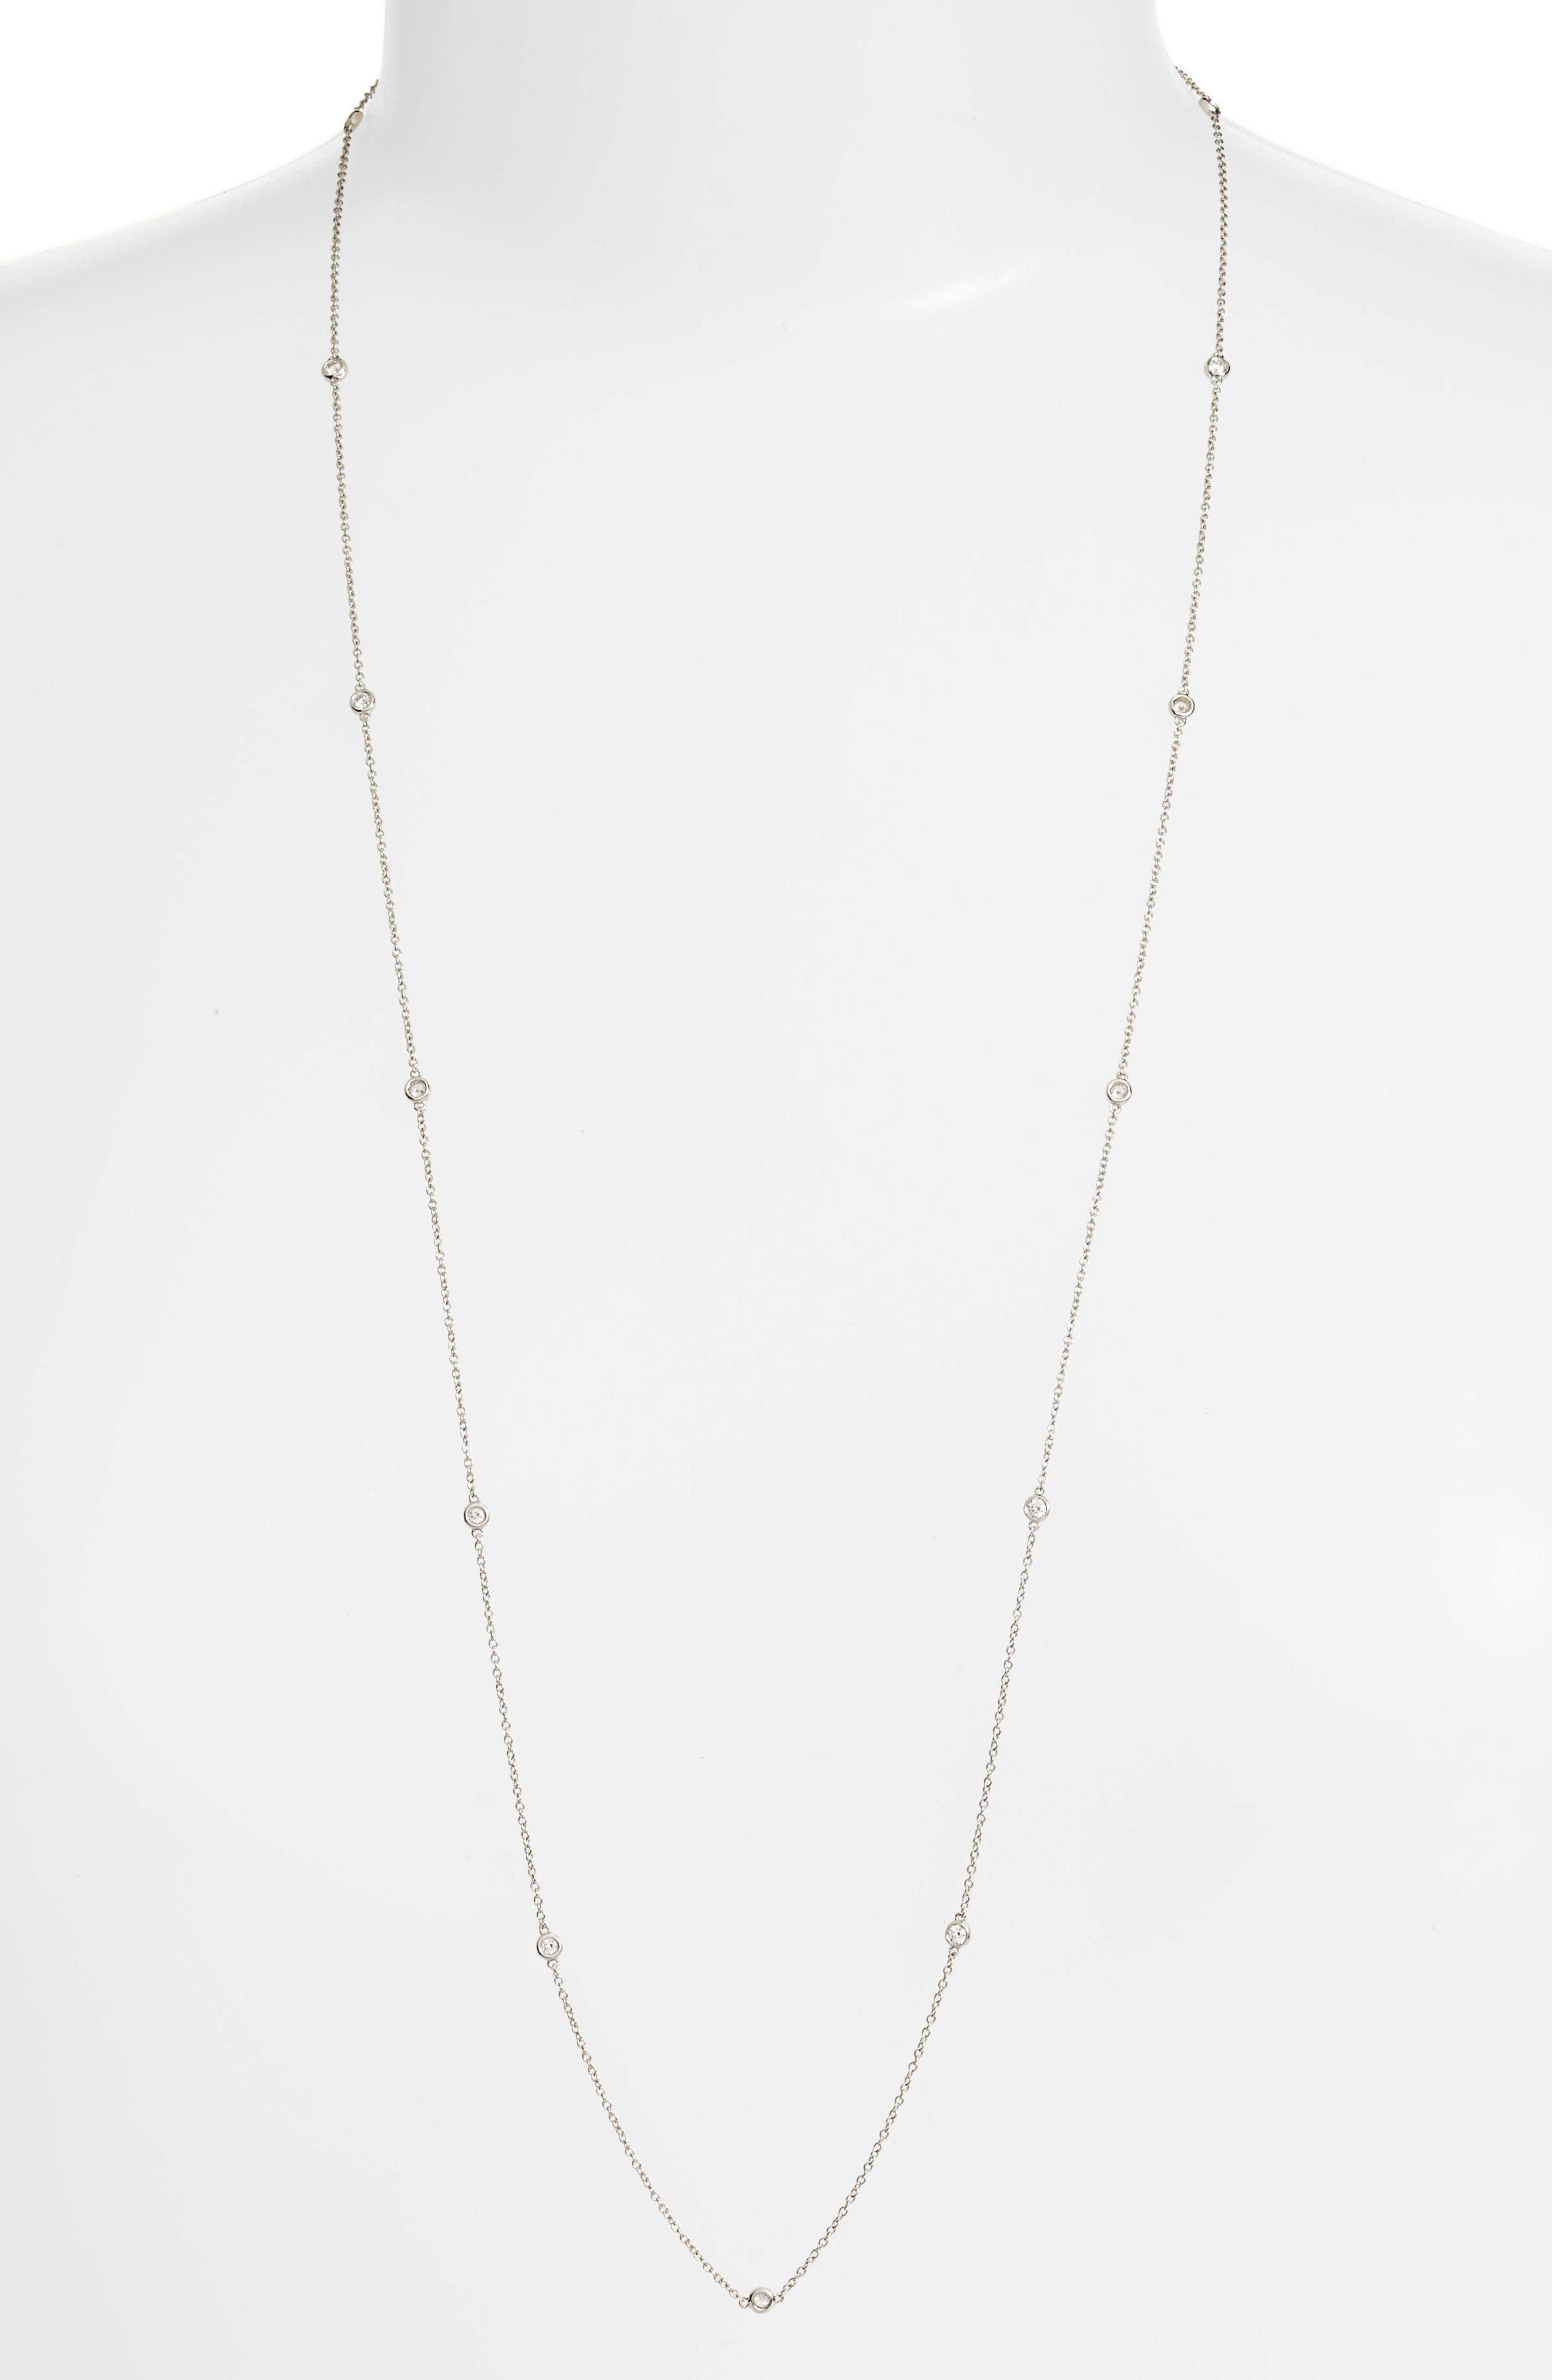 Diamonds by the Yard Necklace,                             Main thumbnail 1, color,                             WHITE GOLD